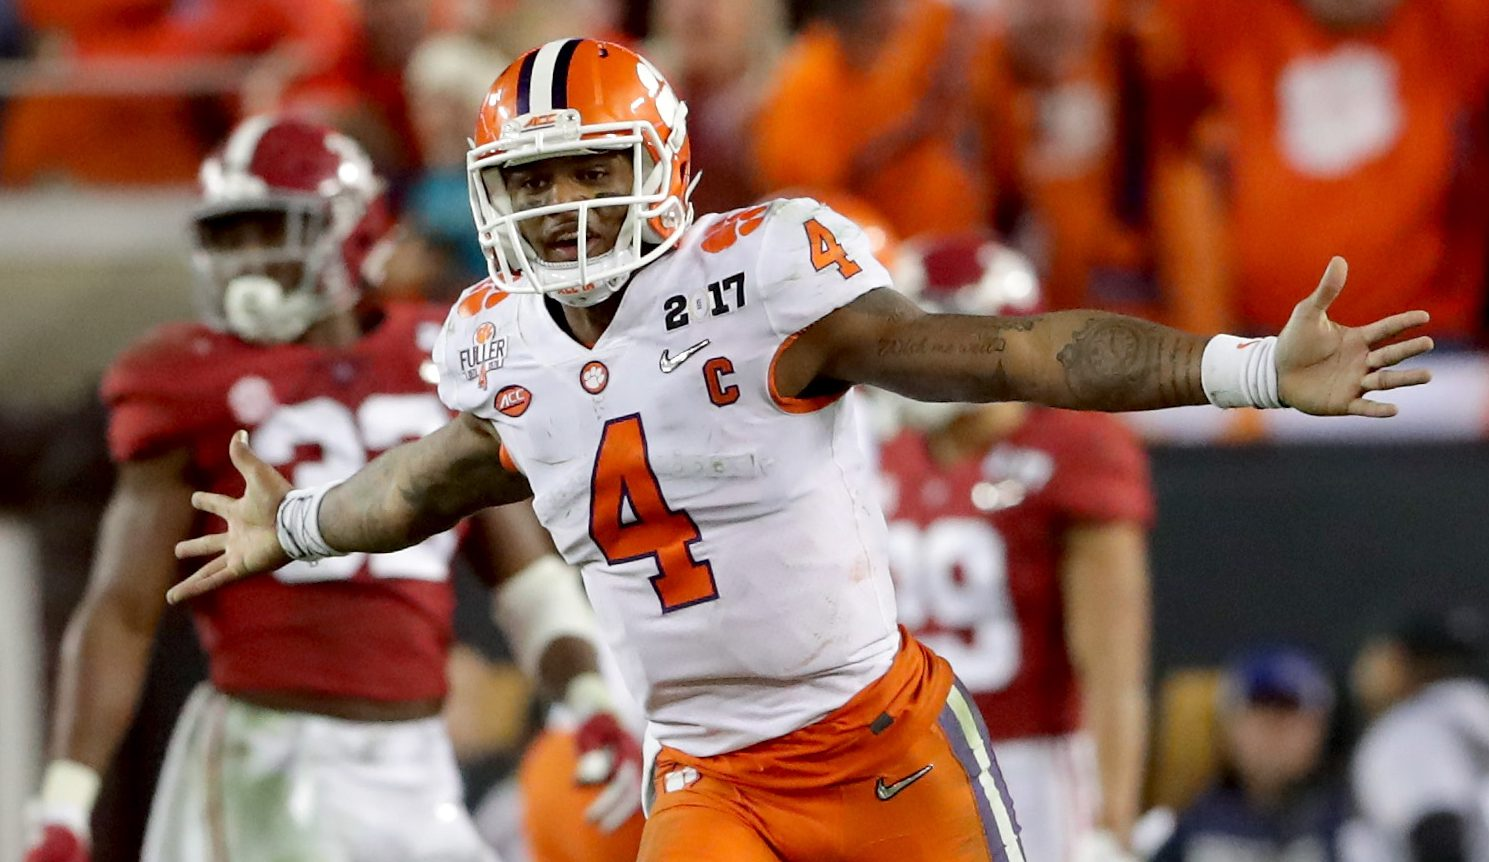 DeShaun Watson celebrating at the National Championship Game. (Photo by Streeter Lecka/Getty Images)